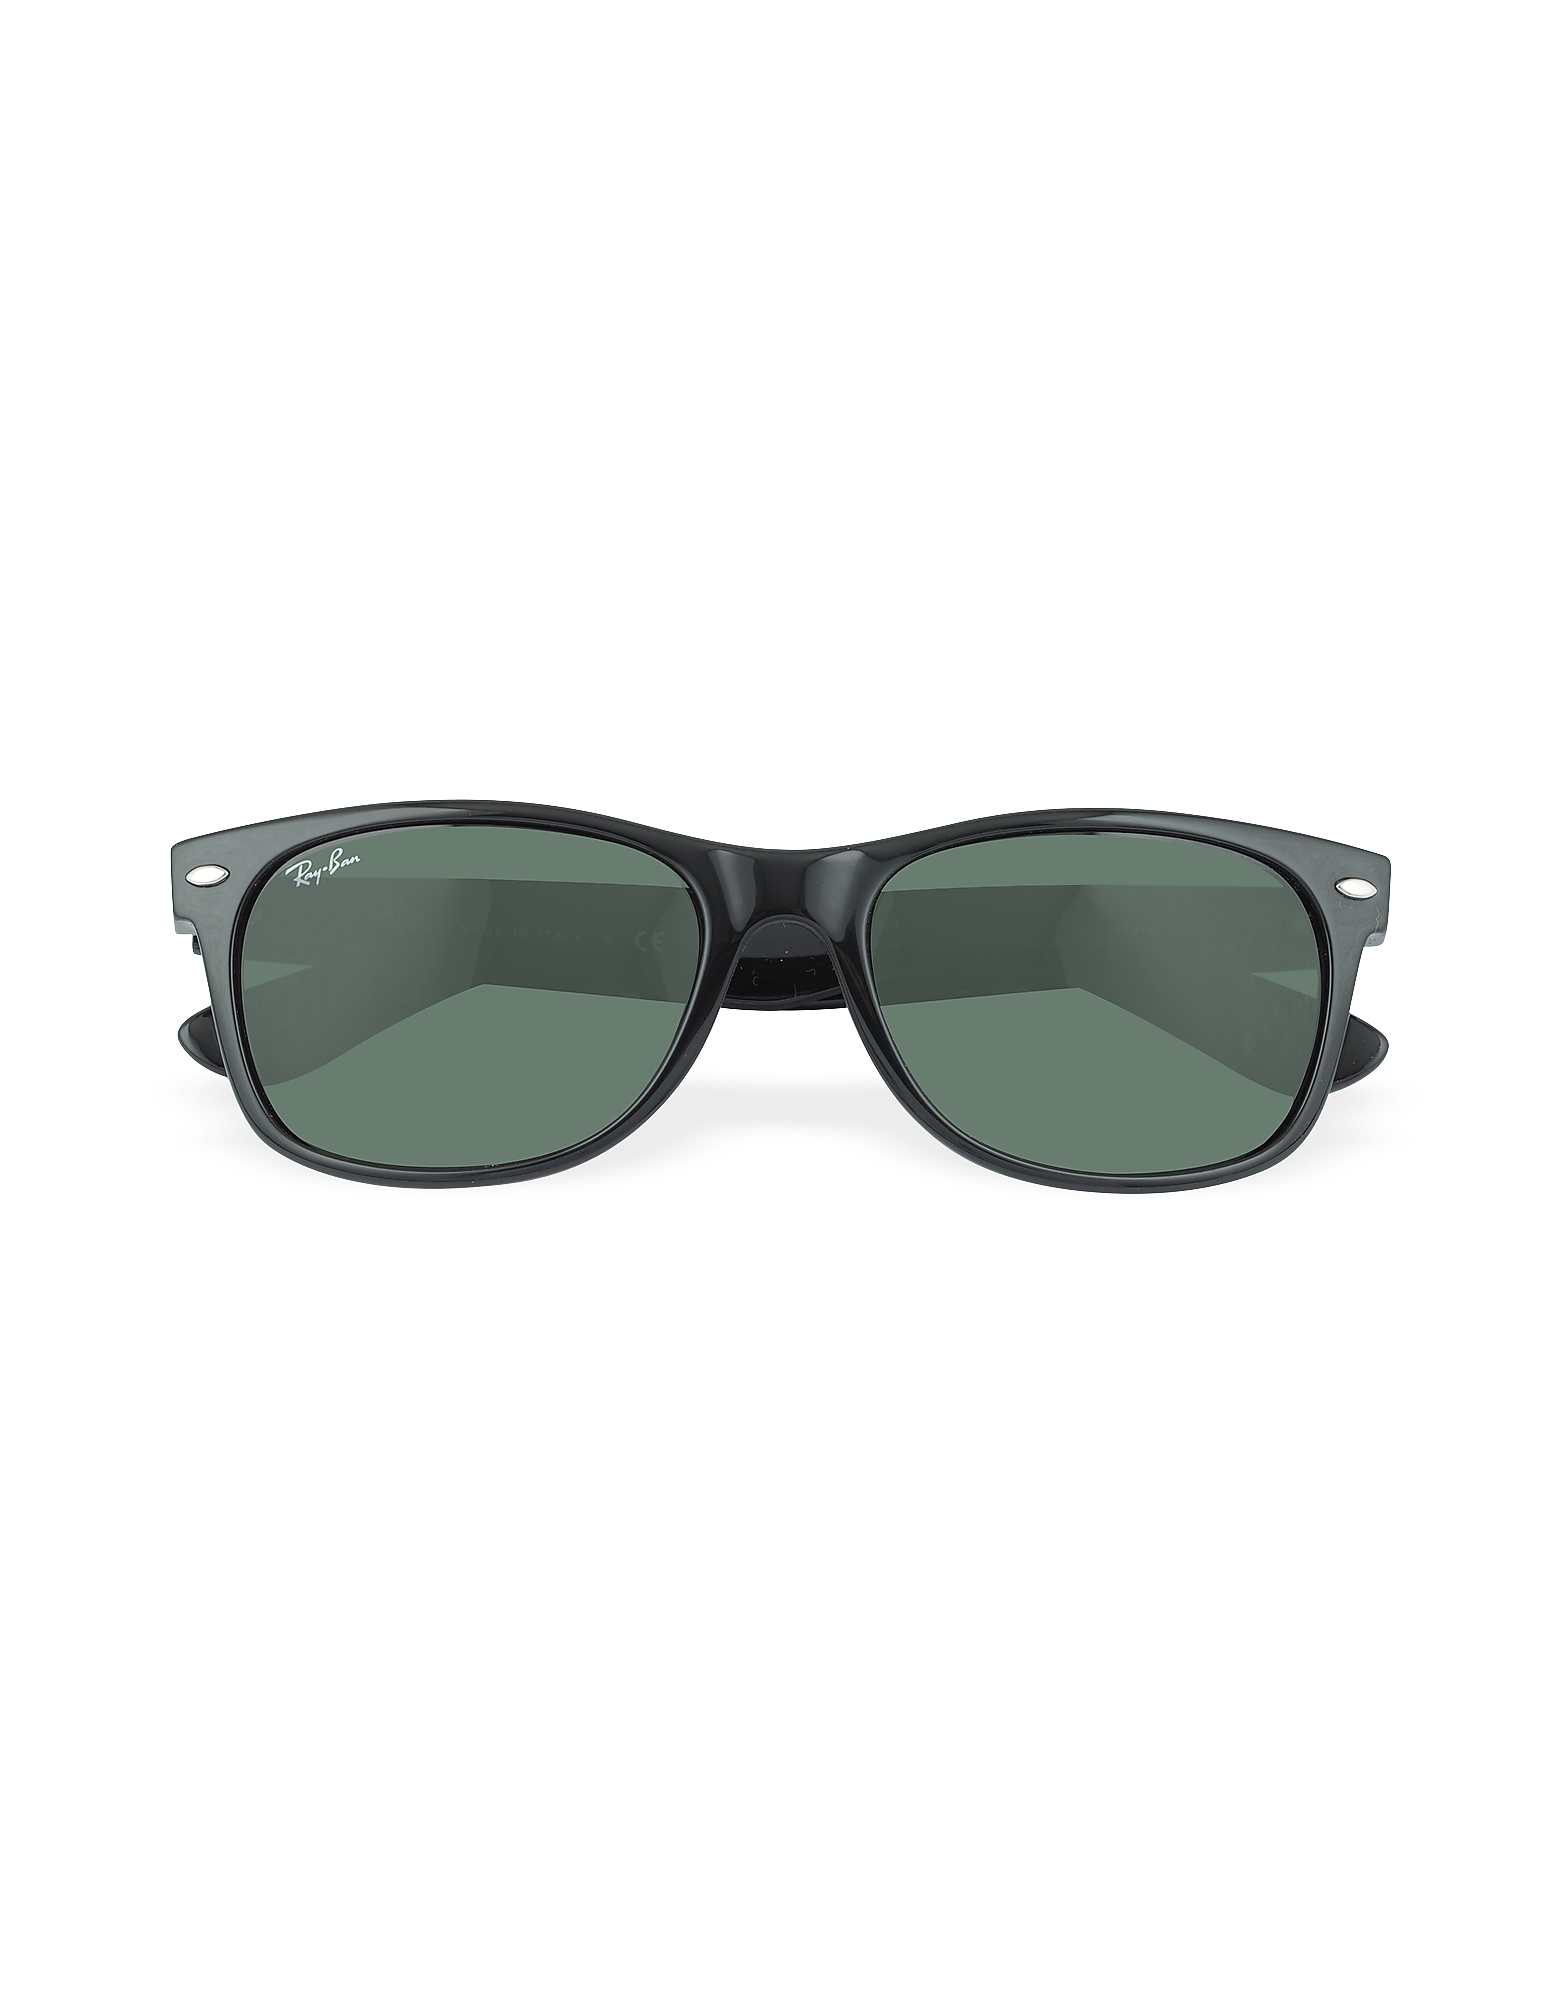 Ray Ban Designer Sunglasses, New Wayfarer - Square Acetate Sunglasses ry473711-018-00